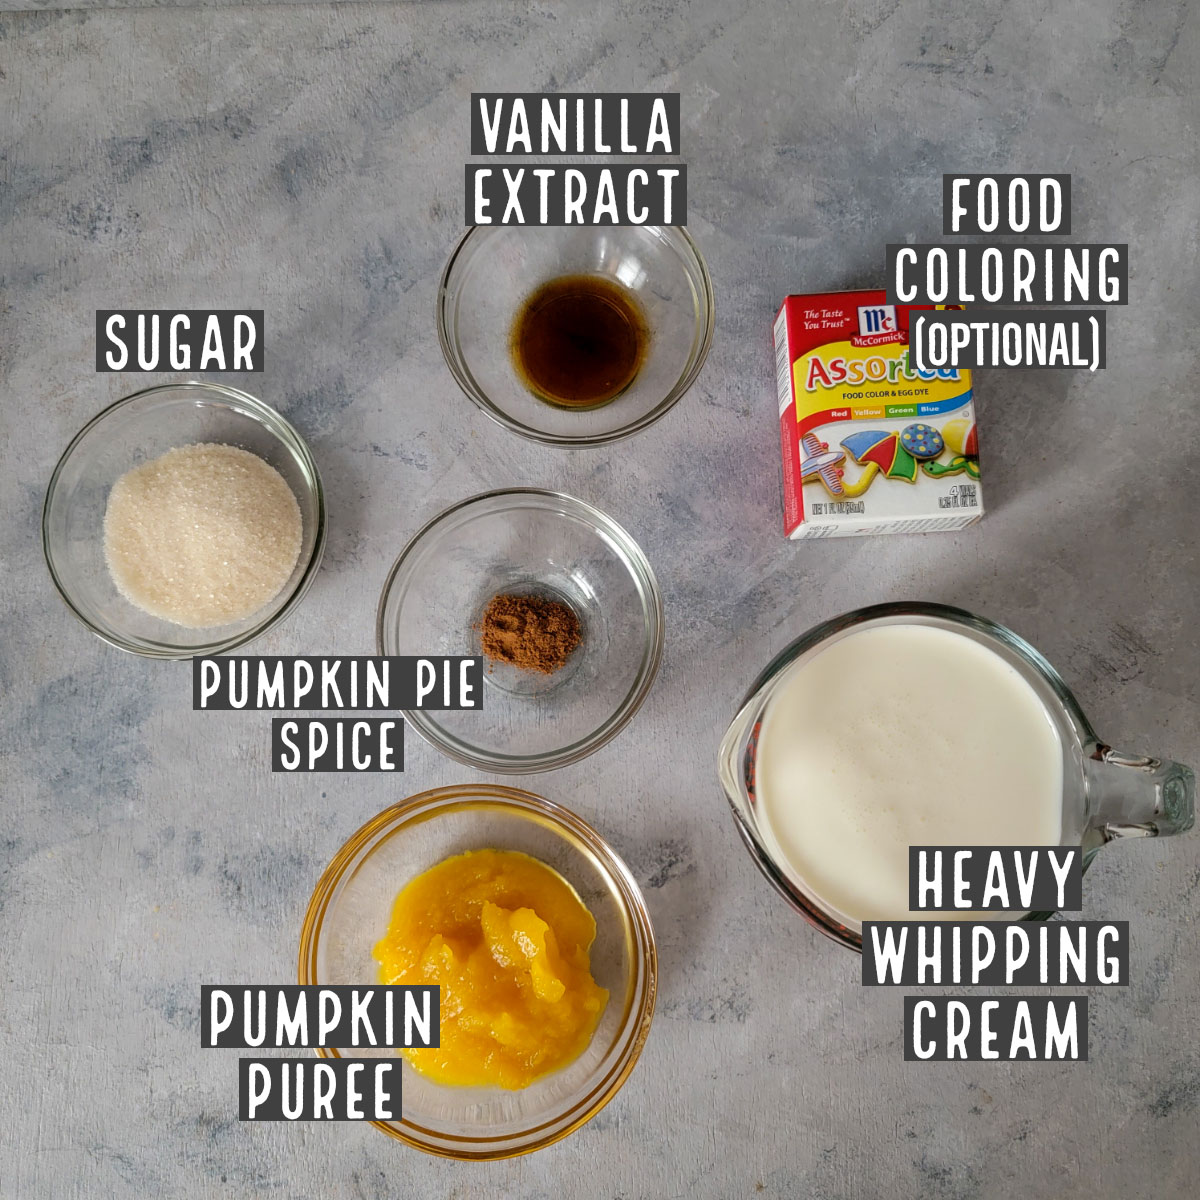 Pumpkin whipped cream ingredients in prep bowls - sugar, vanilla extract, food coloring (optional), pumpkin pie spice, pumpkin puree and heavy whipping cream.